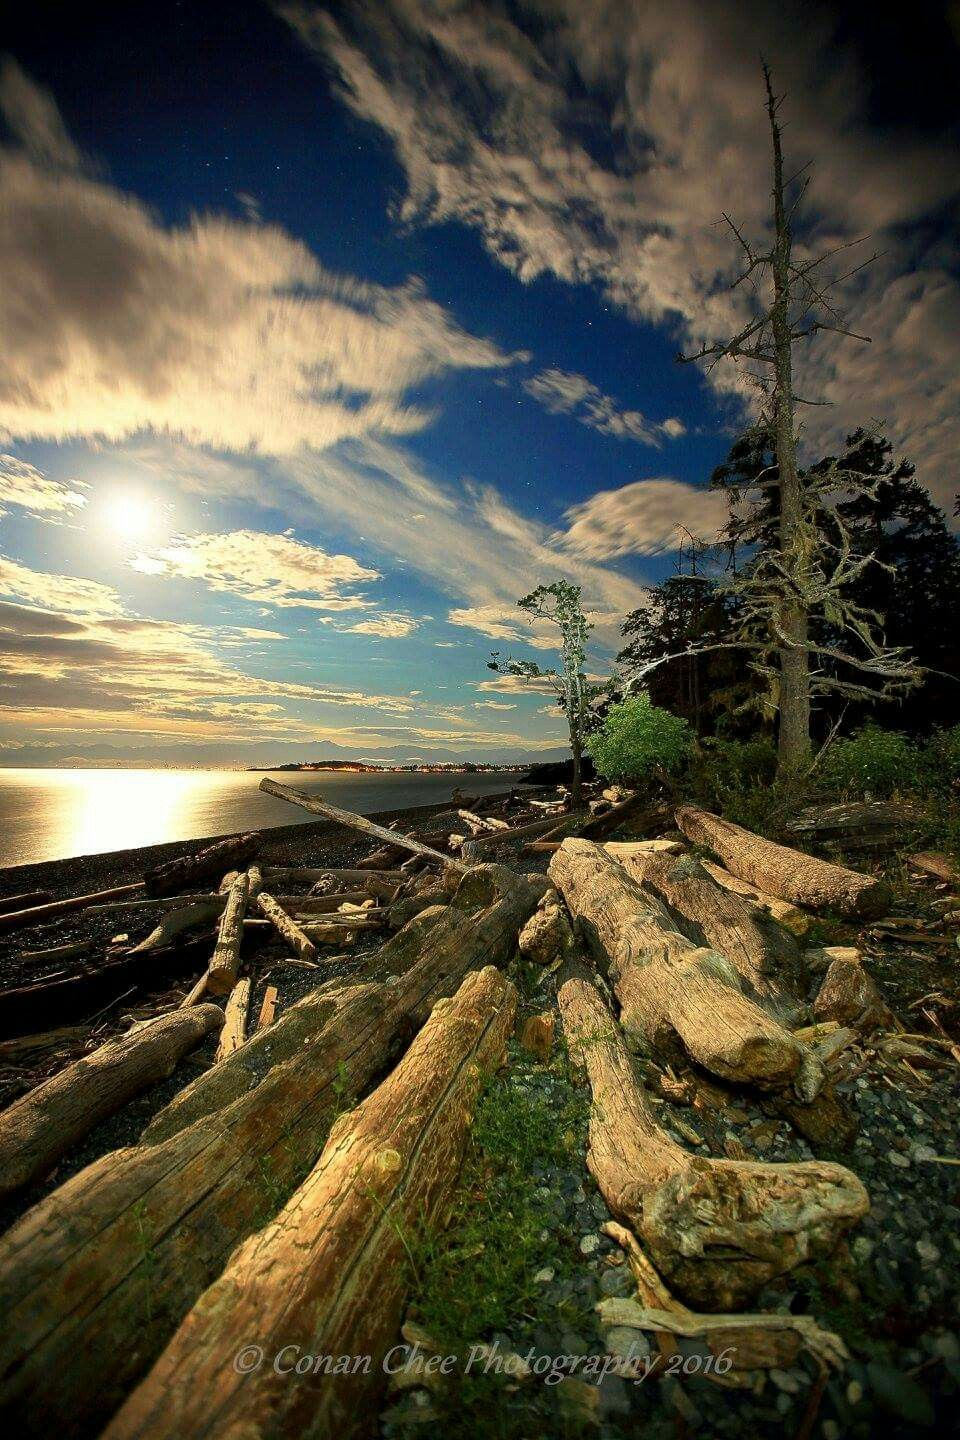 Pin By Bonnie Friesen On Dreaming Of Vancouver Island Pinterest